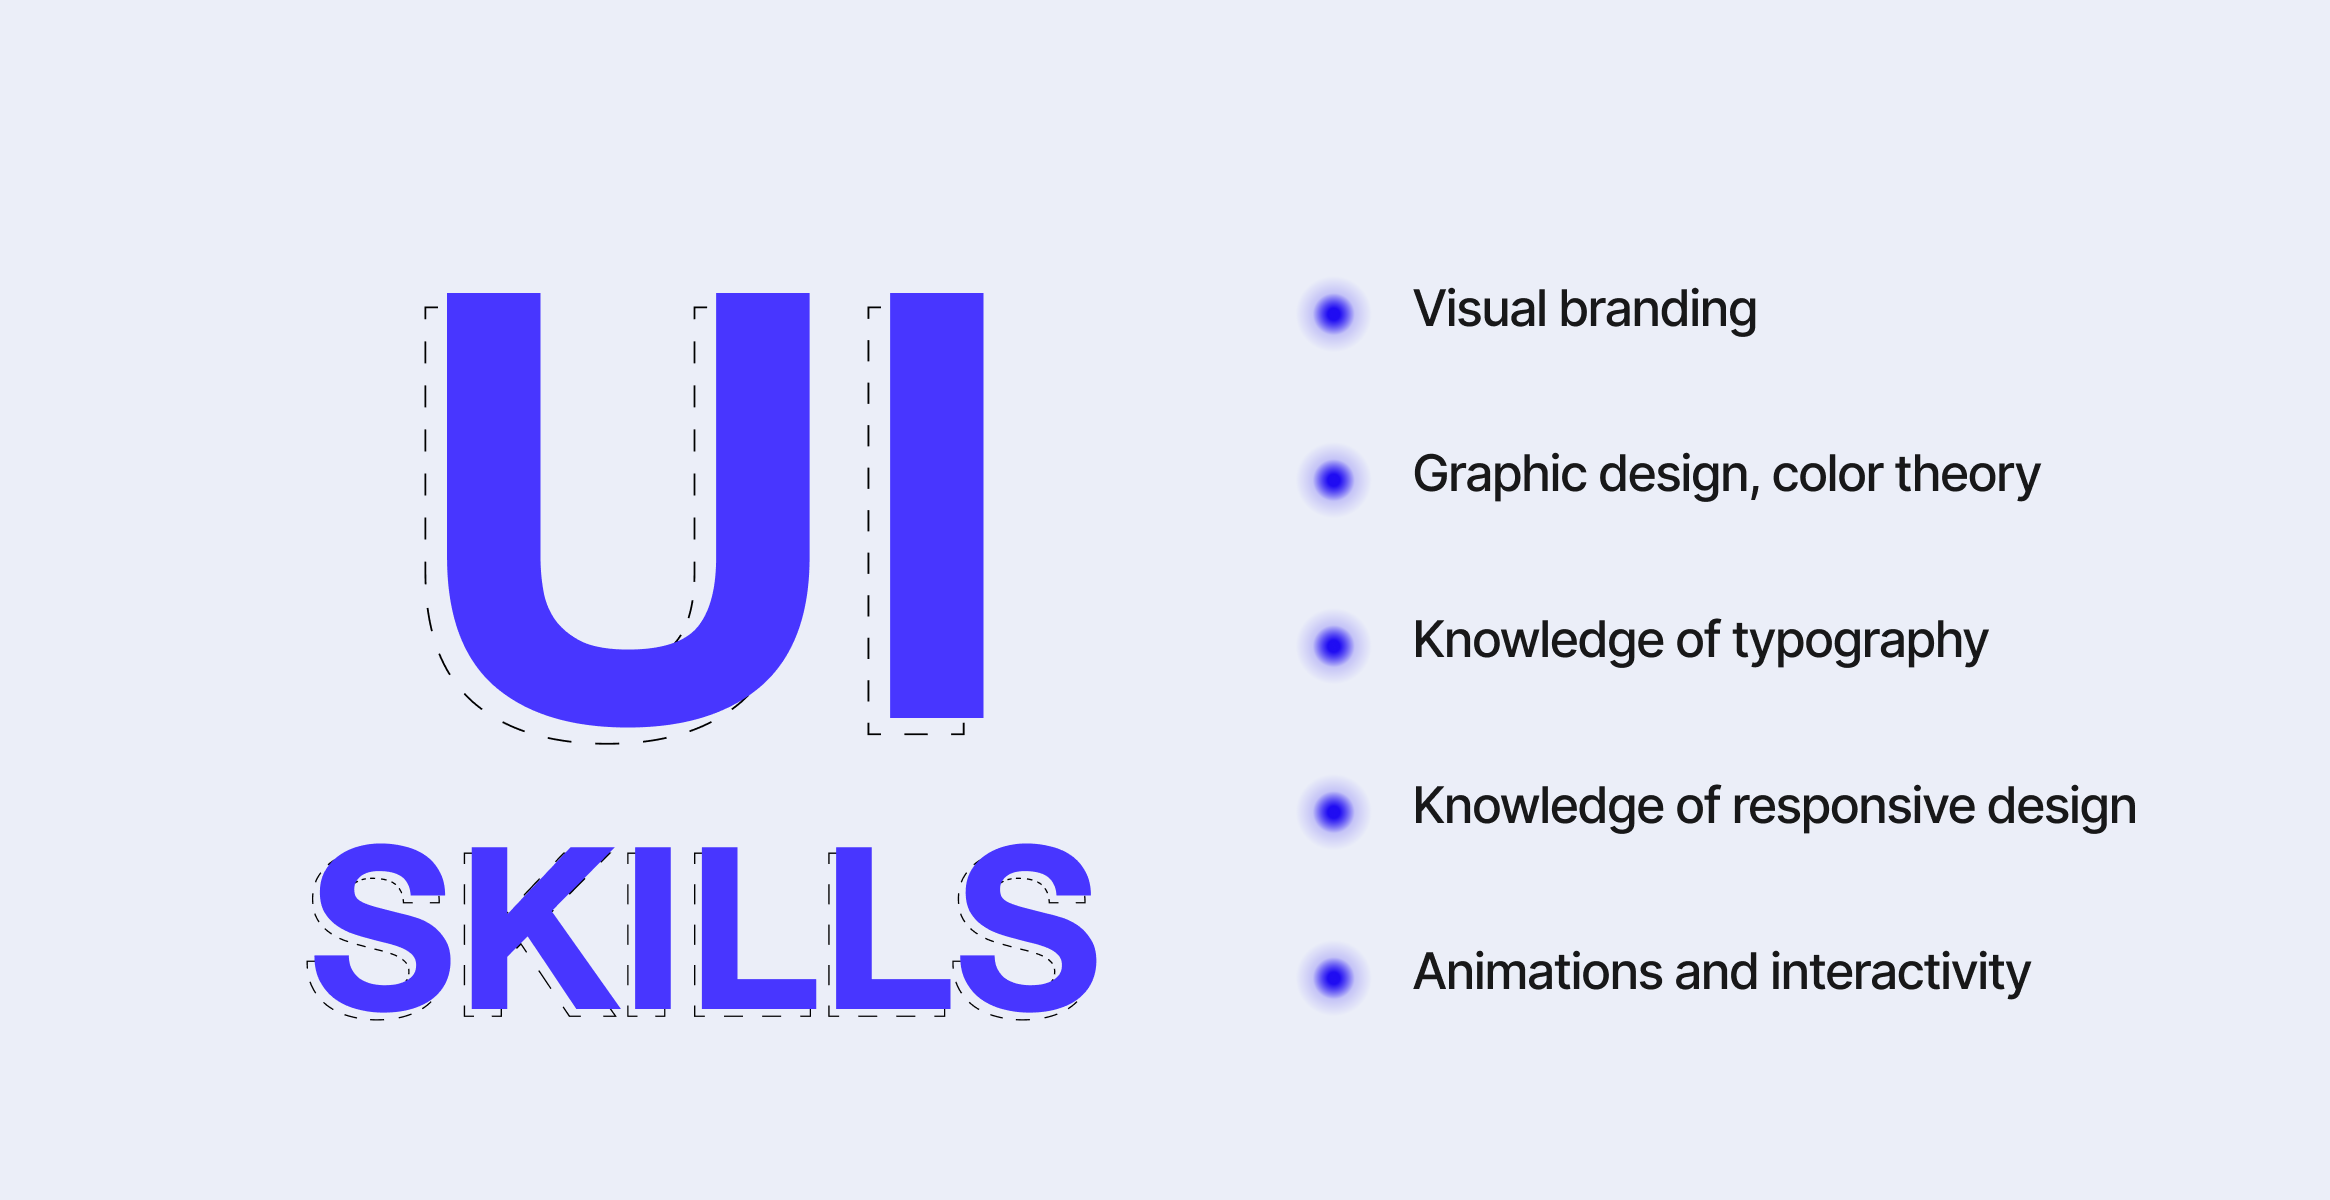 What skills are needed to work as a UI designer